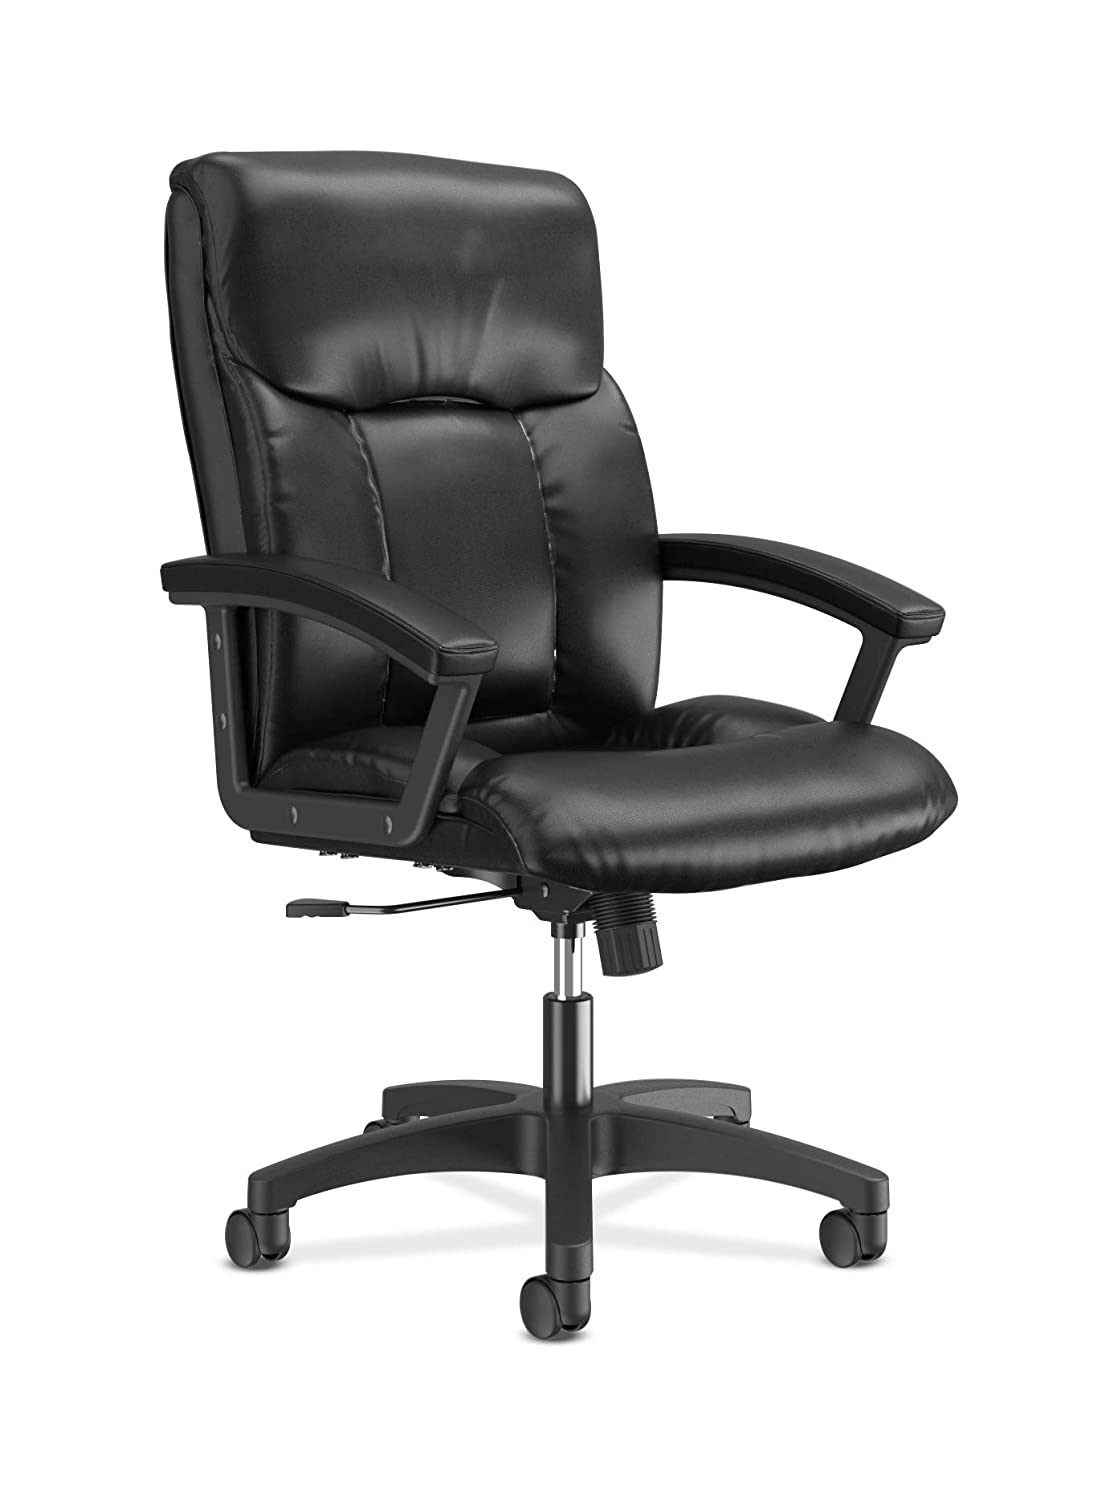 HON HVL151.SB11 Leather Executive Chair - High-Back Computer Chair for Office Desk, Black (VL151)